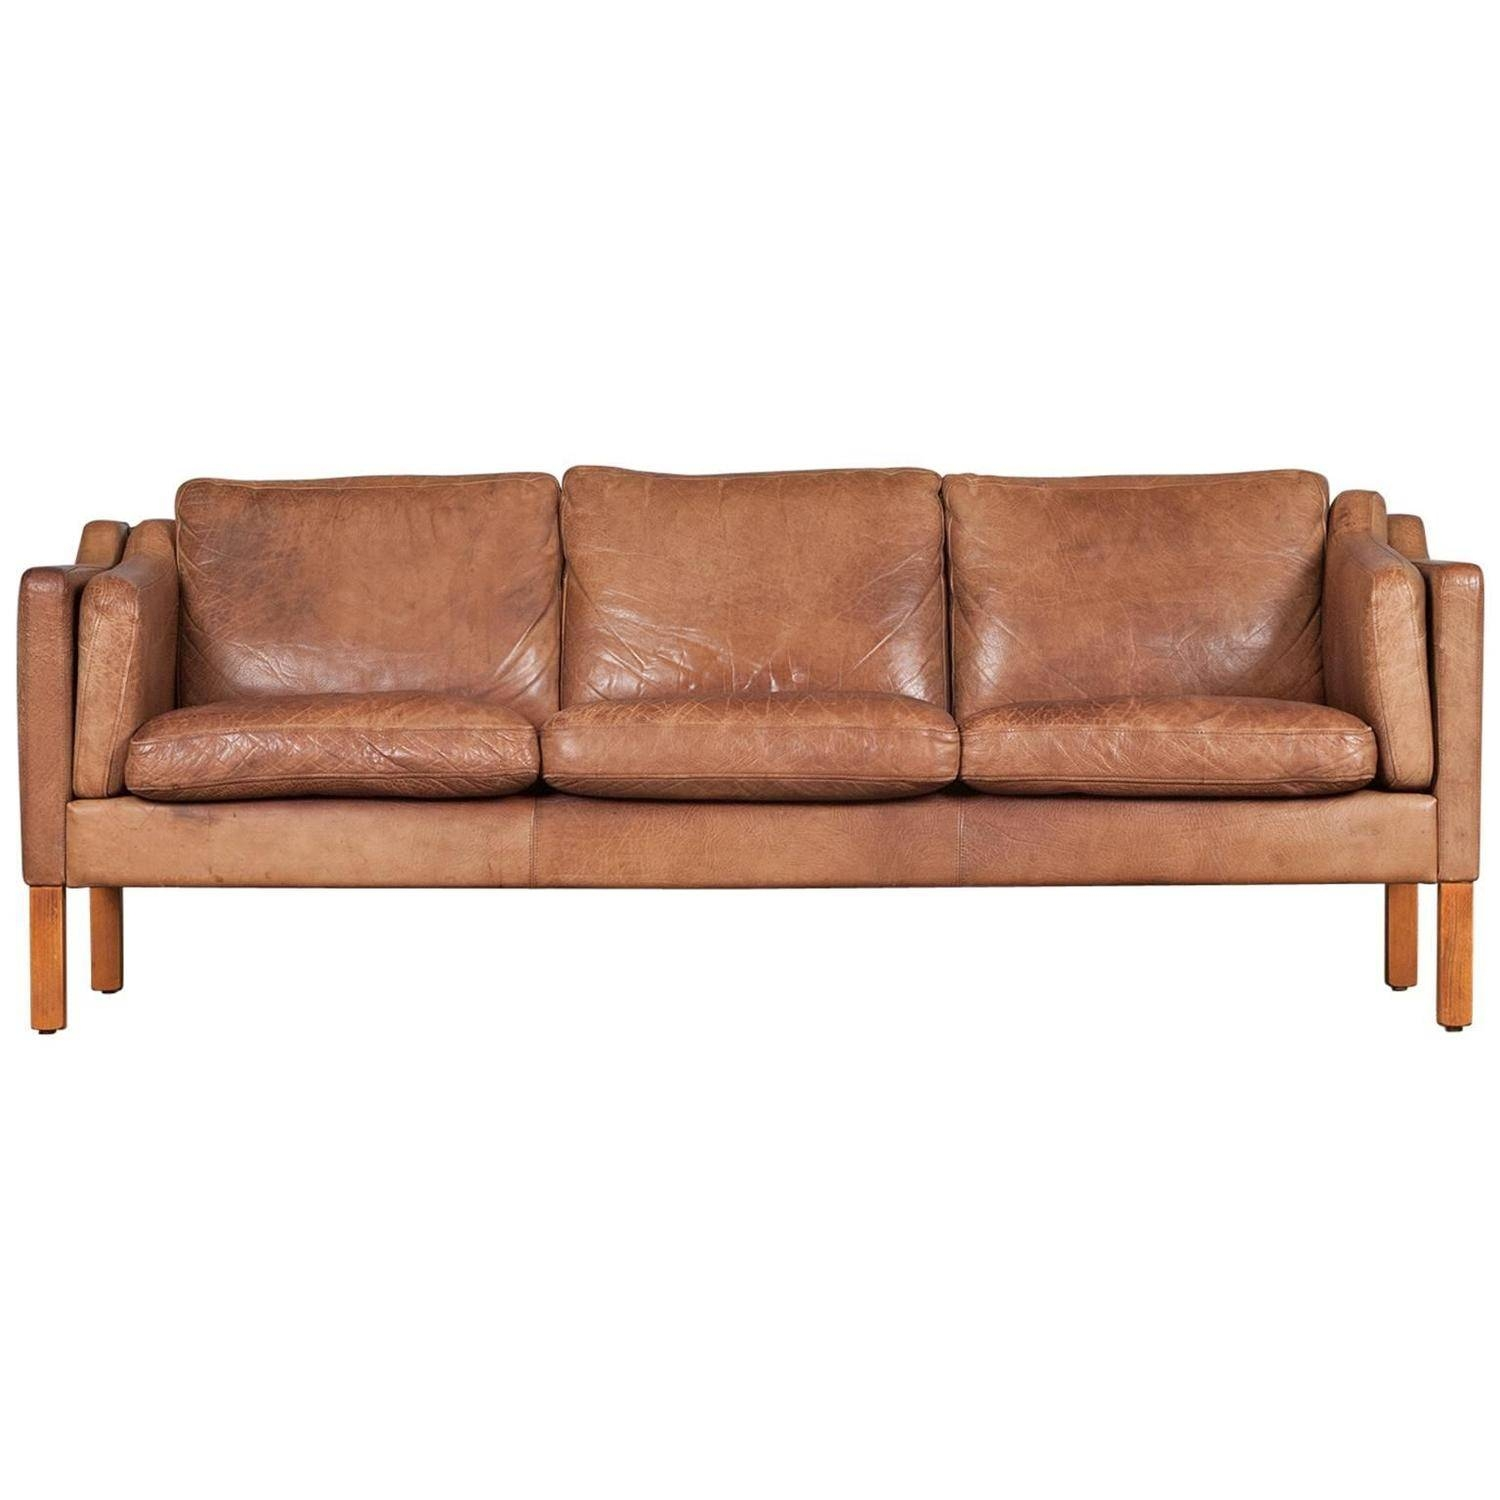 Danish Three-Seater Sofa In Camel Coloured Leather, 1960S At 1Stdibs inside Camel Colored Leather Sofas (Image 7 of 15)